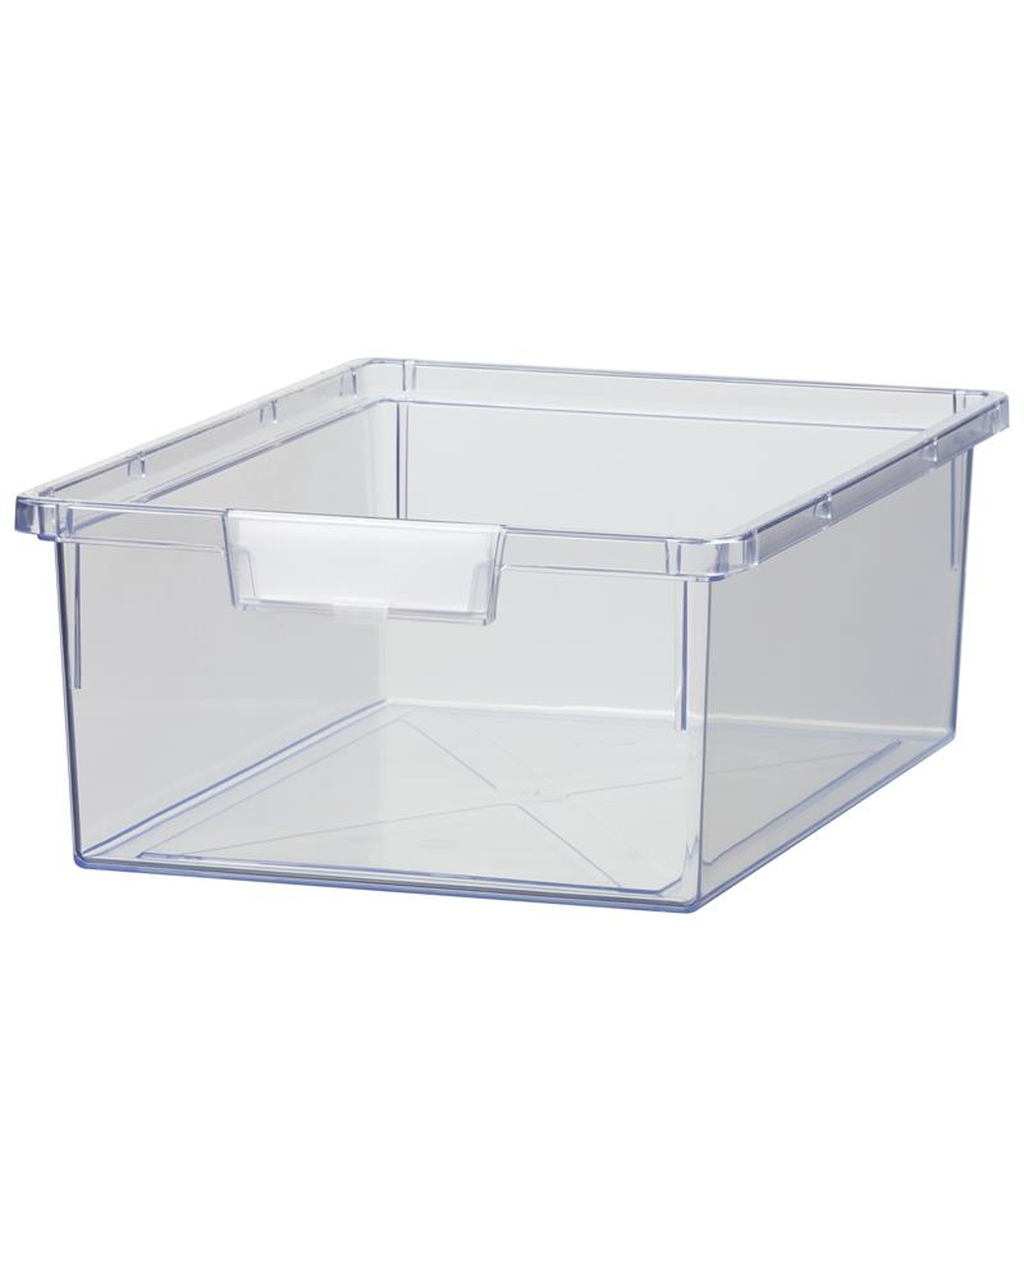 Shatterproof Double Depth Tray - Crystal Clear